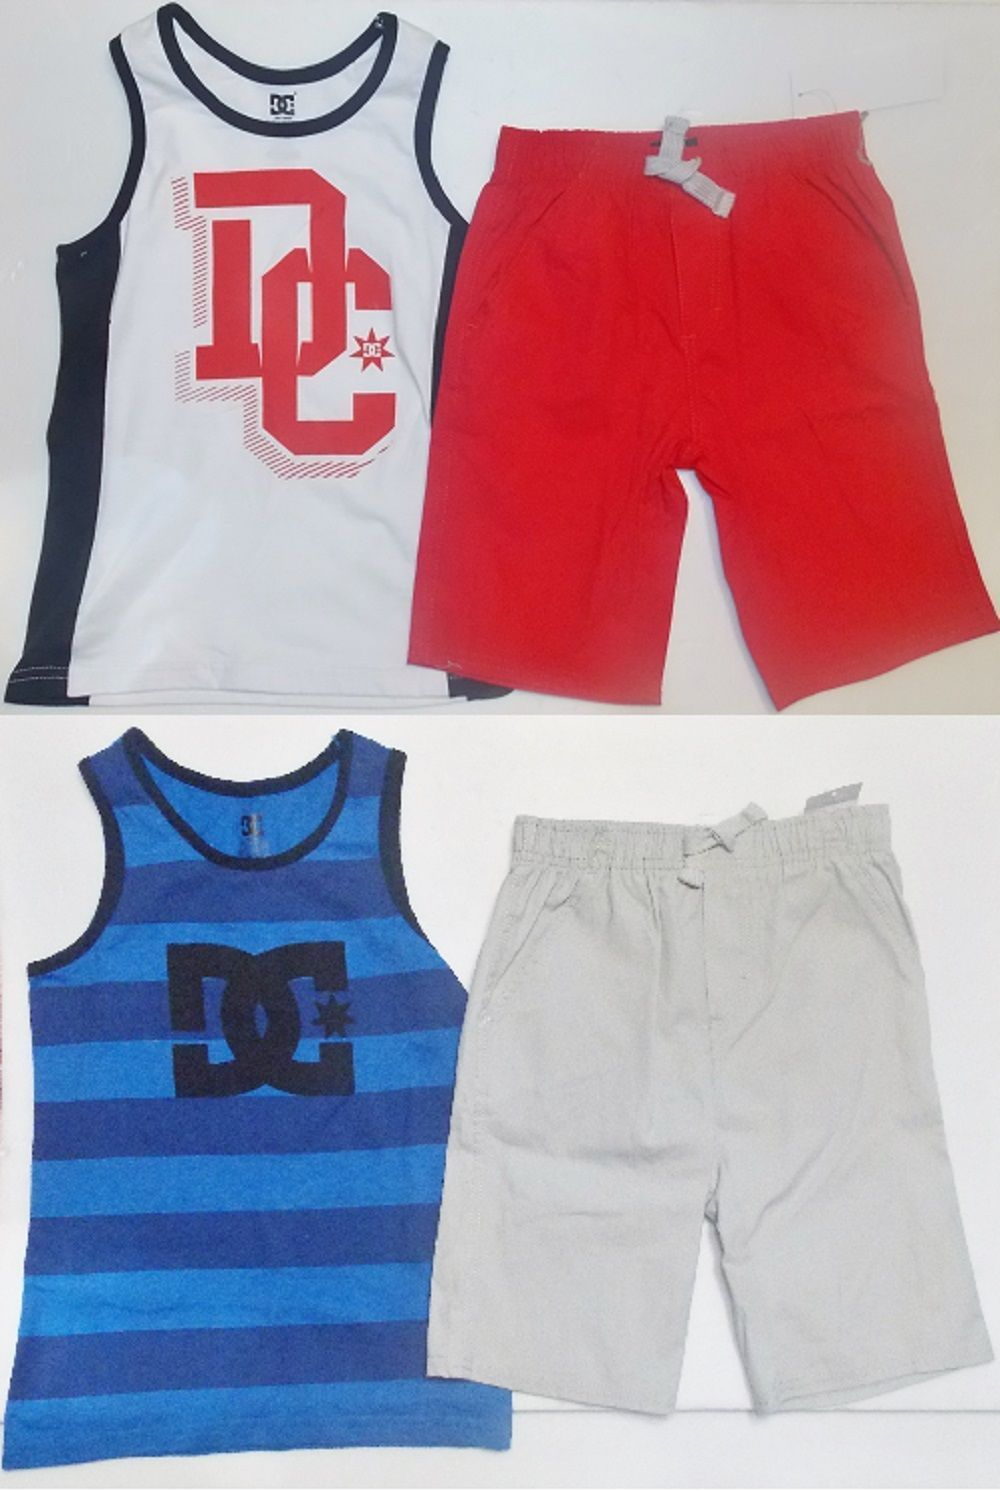 7f072ca8102 DC Shoes Boys 2pc Shorts and Sleeveless 2 and 30 similar items. 57